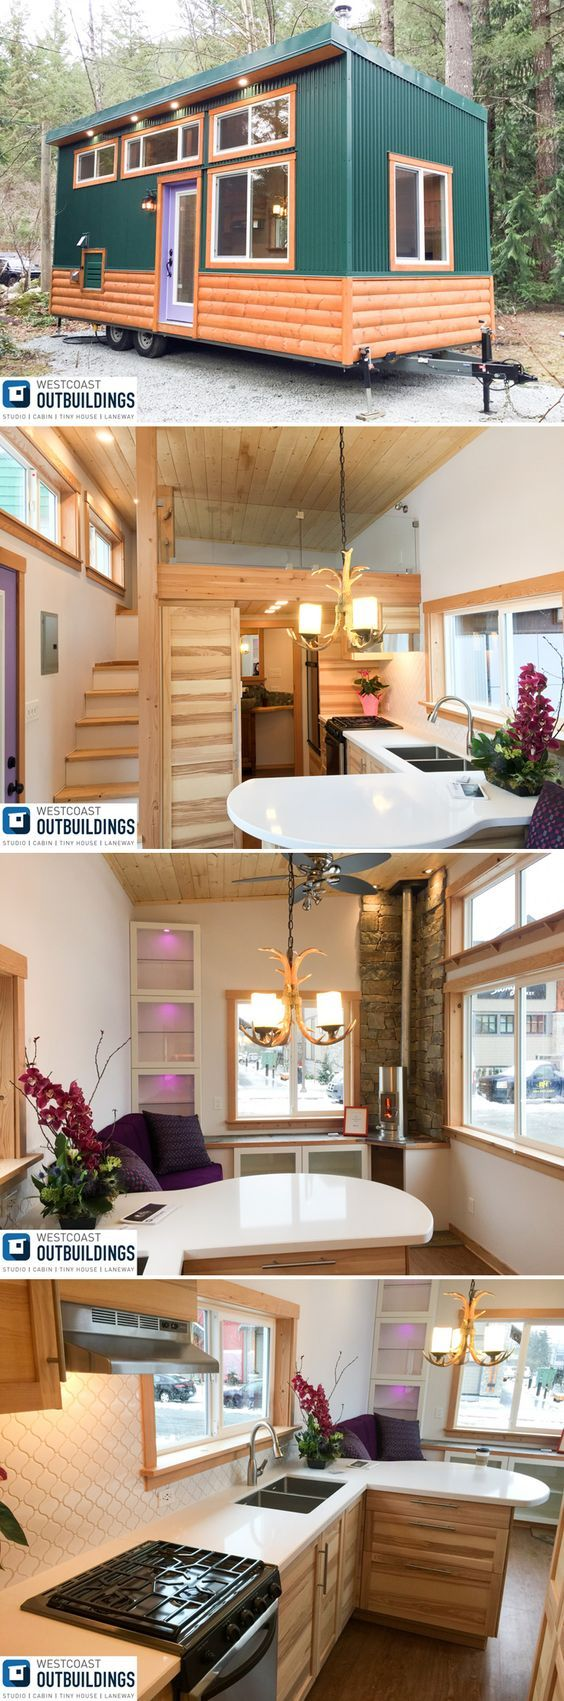 The Skookum is a 24' modern cabin style tiny house built by Westcoast Outbuildings in North Vancouver, British Columbia.